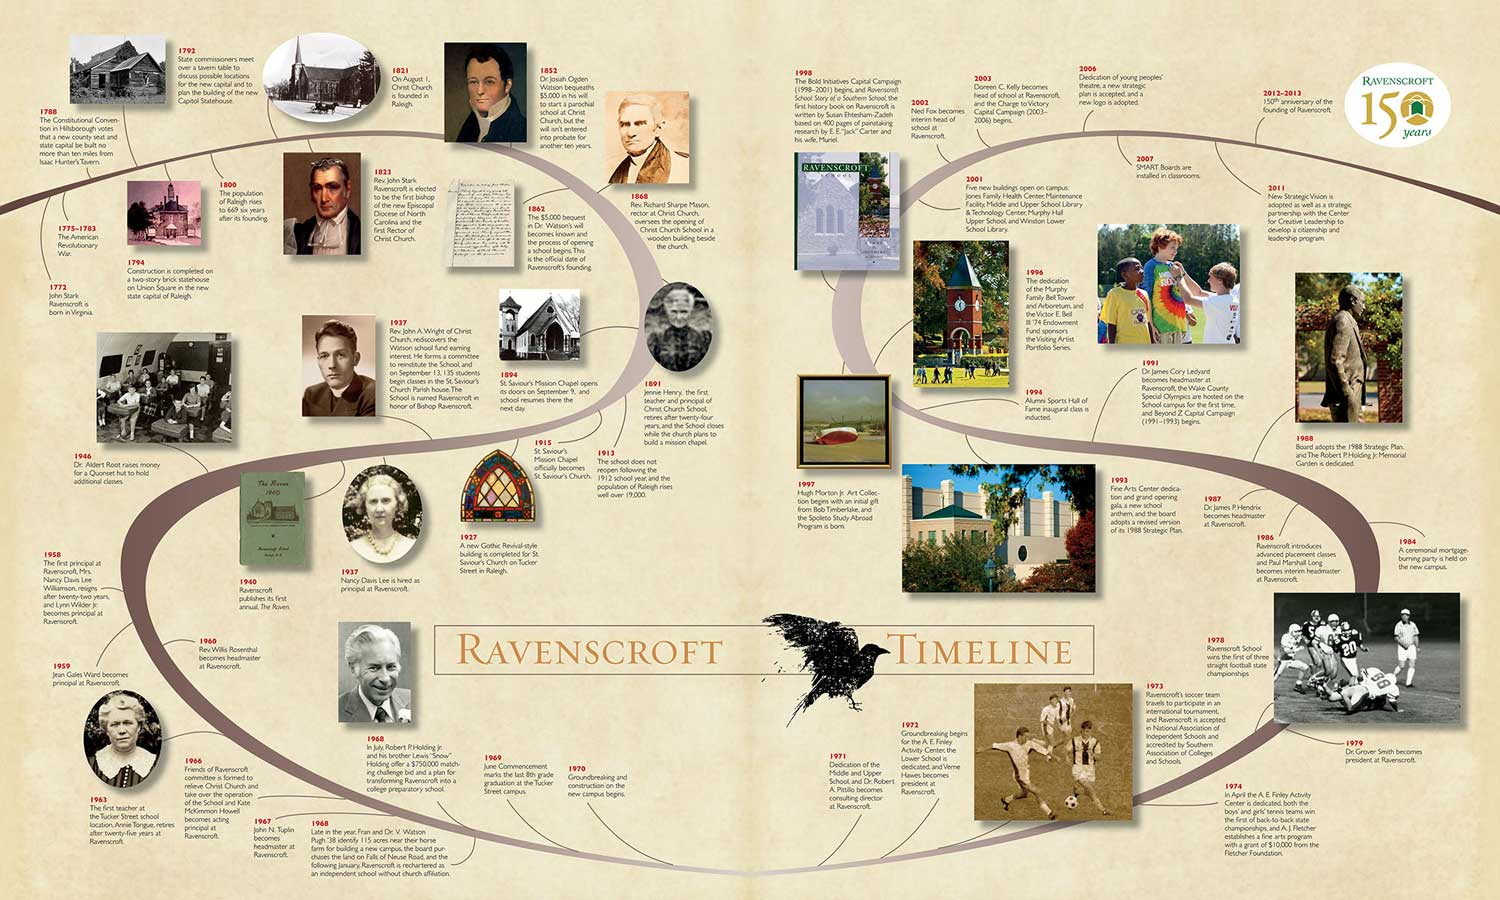 Laurie developed this 150-year visual timeline for Ravenscroft.